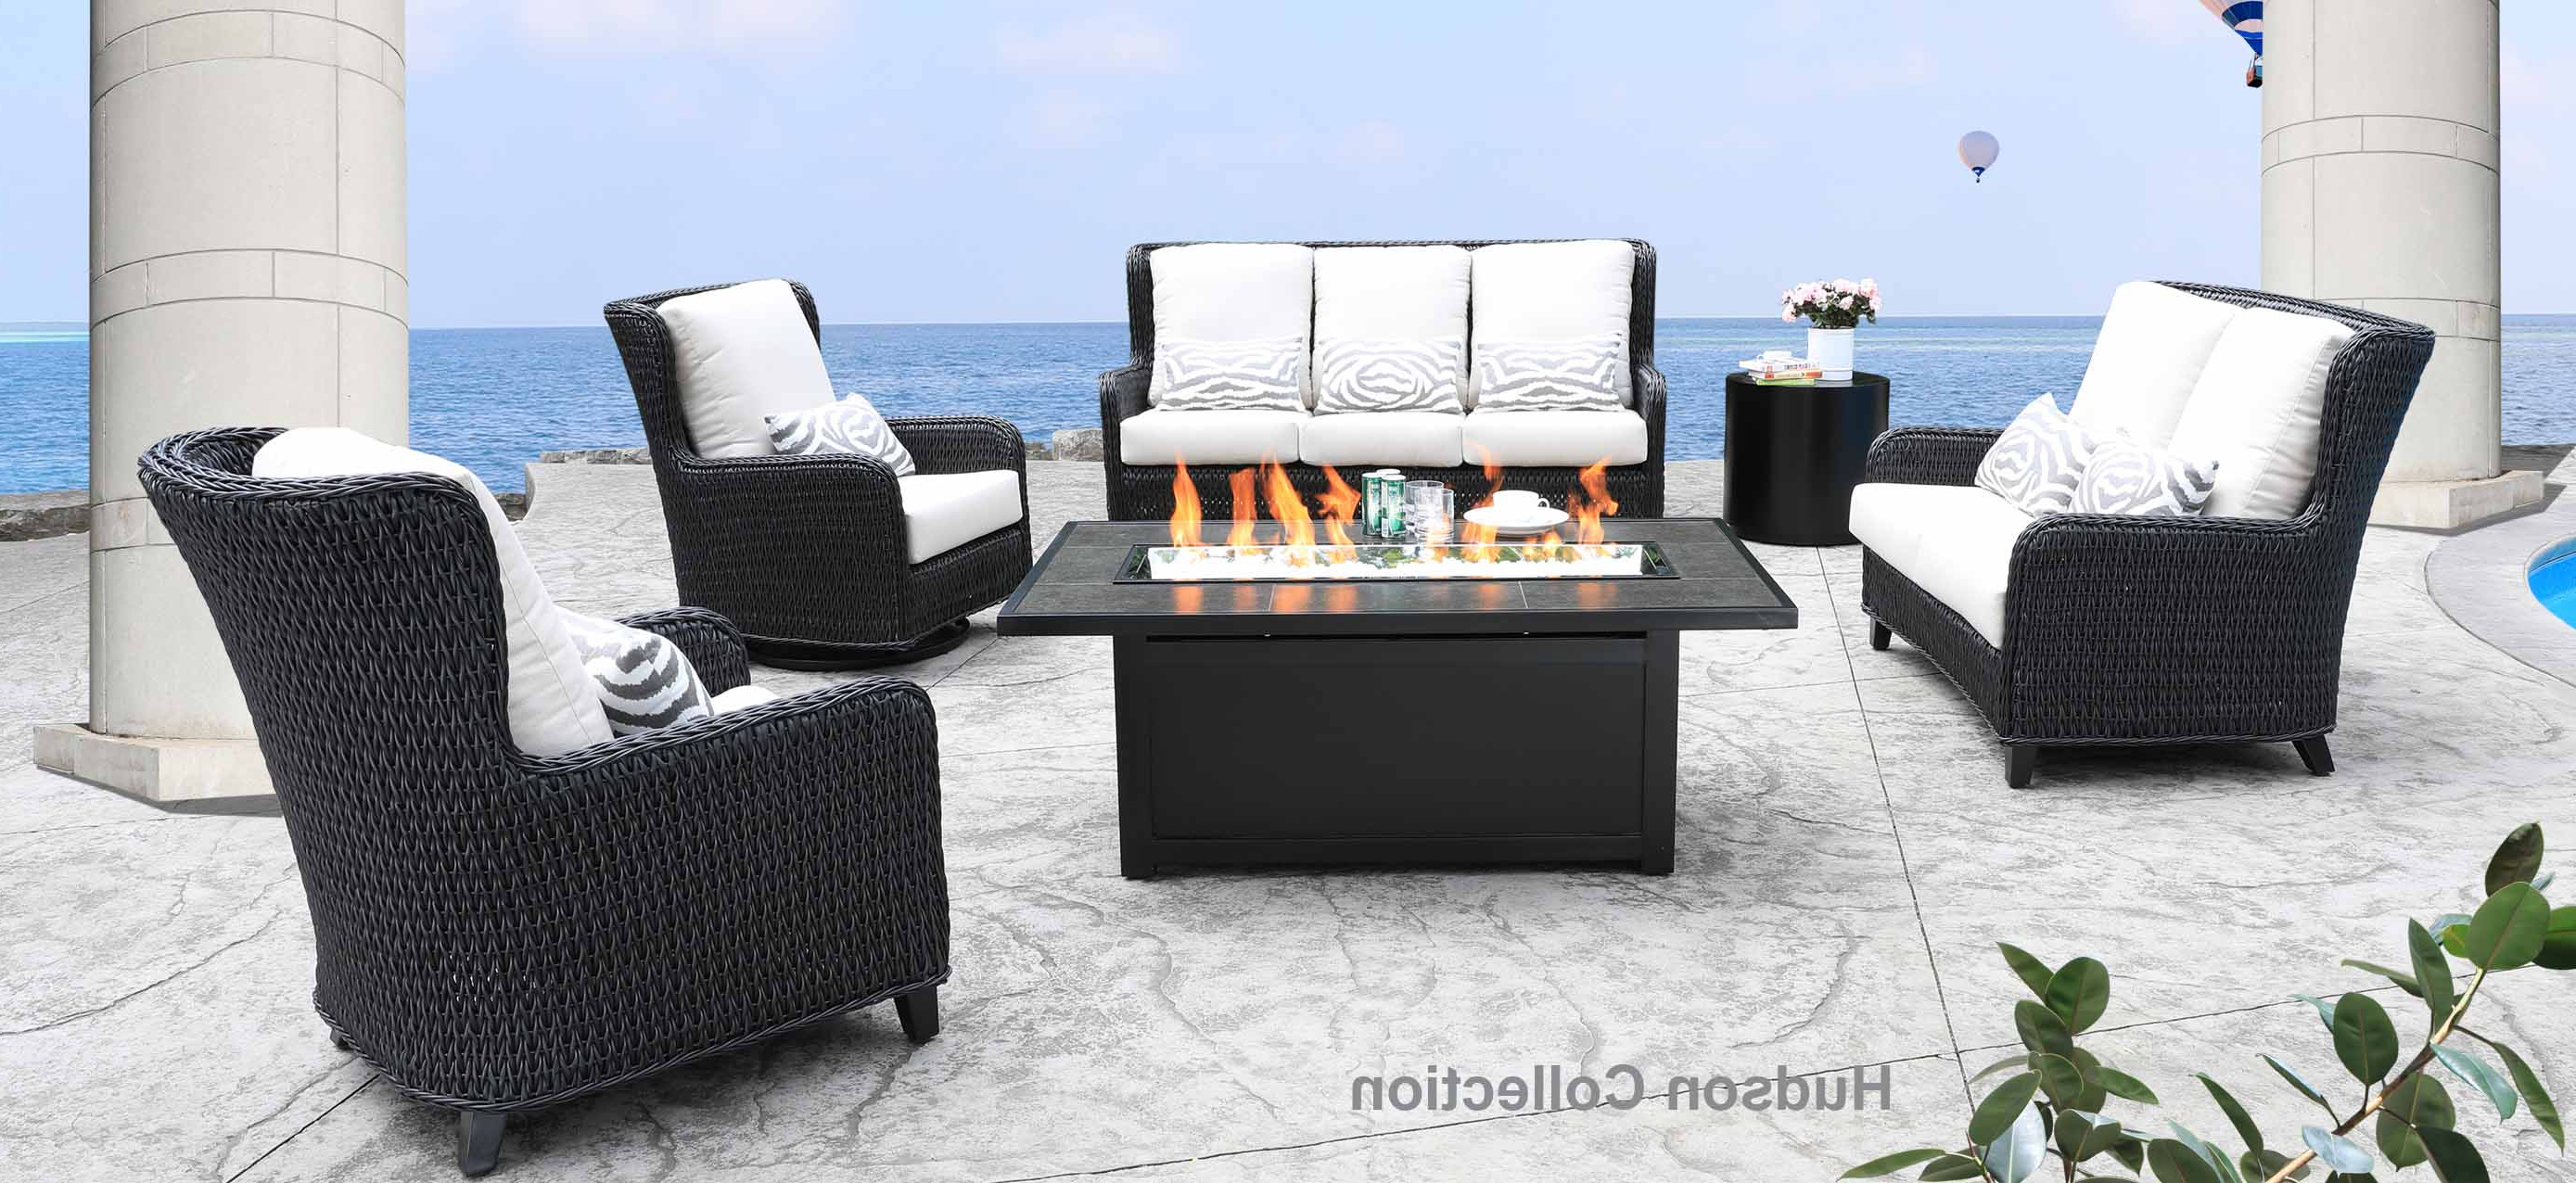 Well Liked Shop Patio Furniture At Cabanacoast® In Baltic Patio Sofas With Cushions (View 21 of 25)